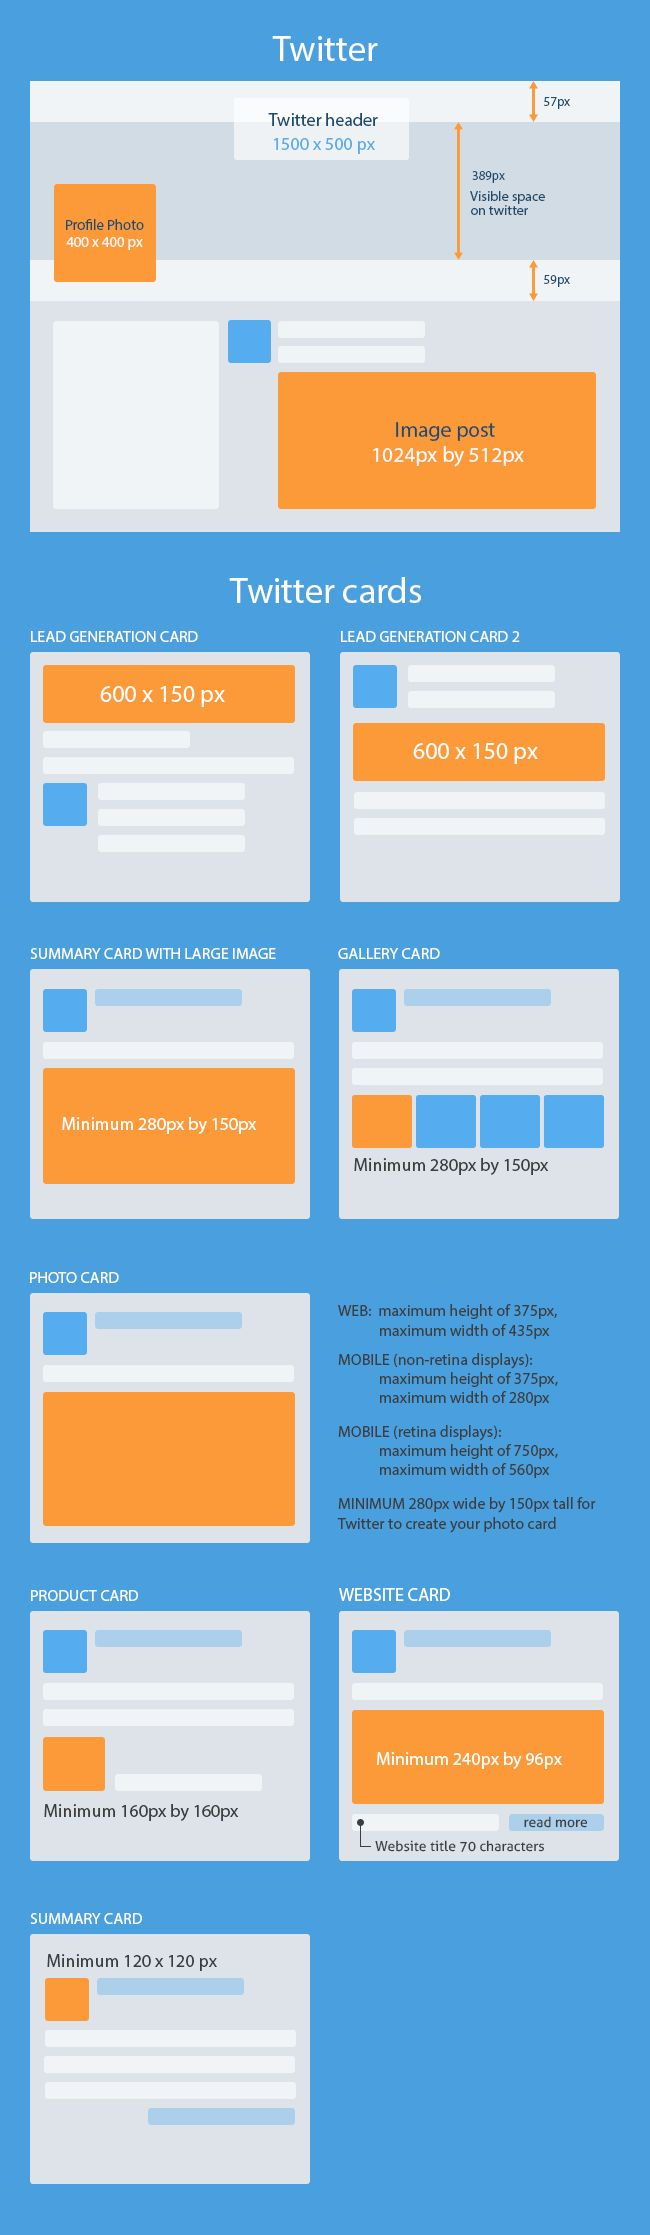 All Twitter image sizes and best practices on how to use them